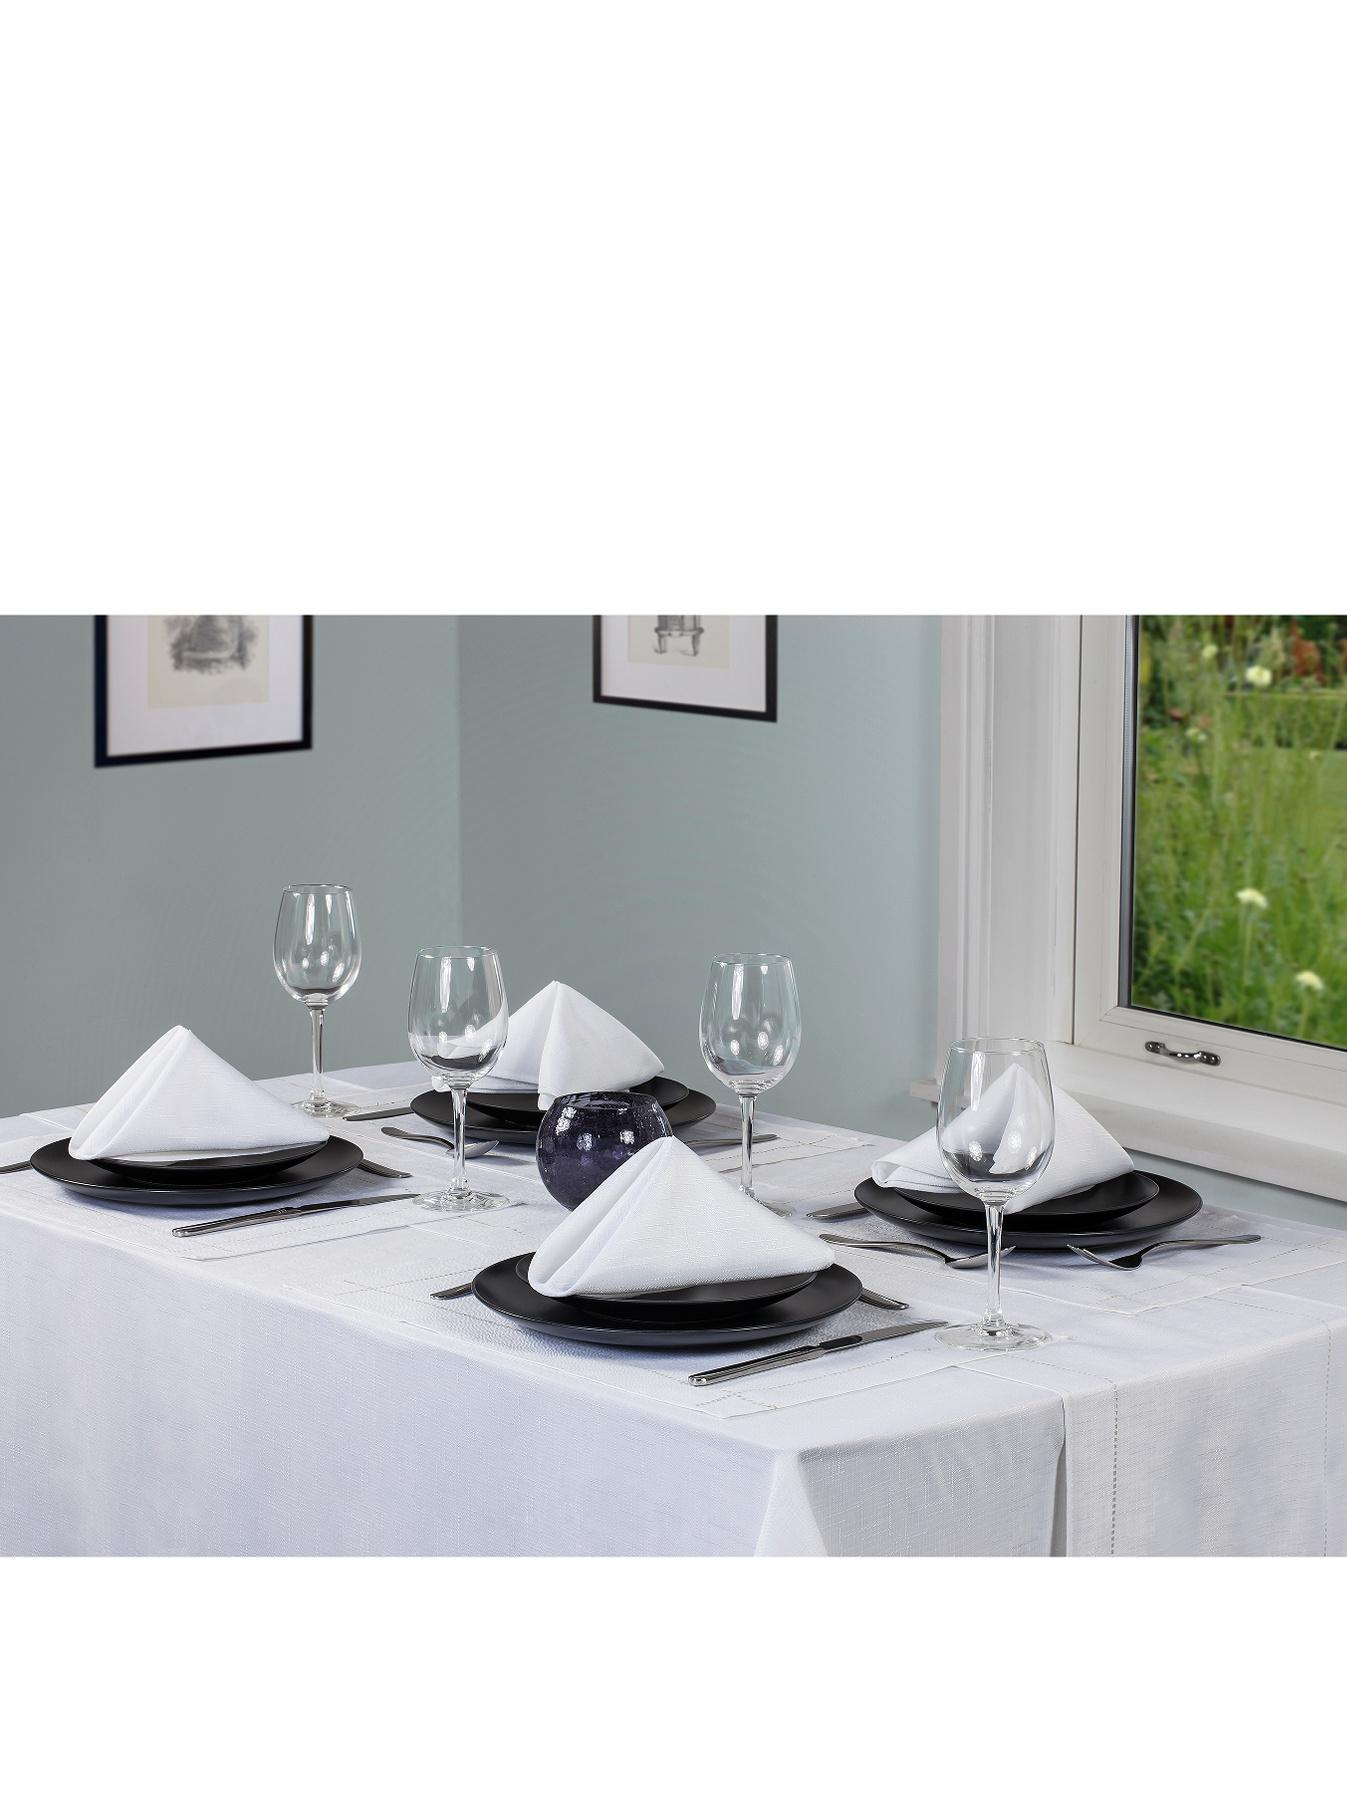 Linen Look Table Textile Set - White - White, White